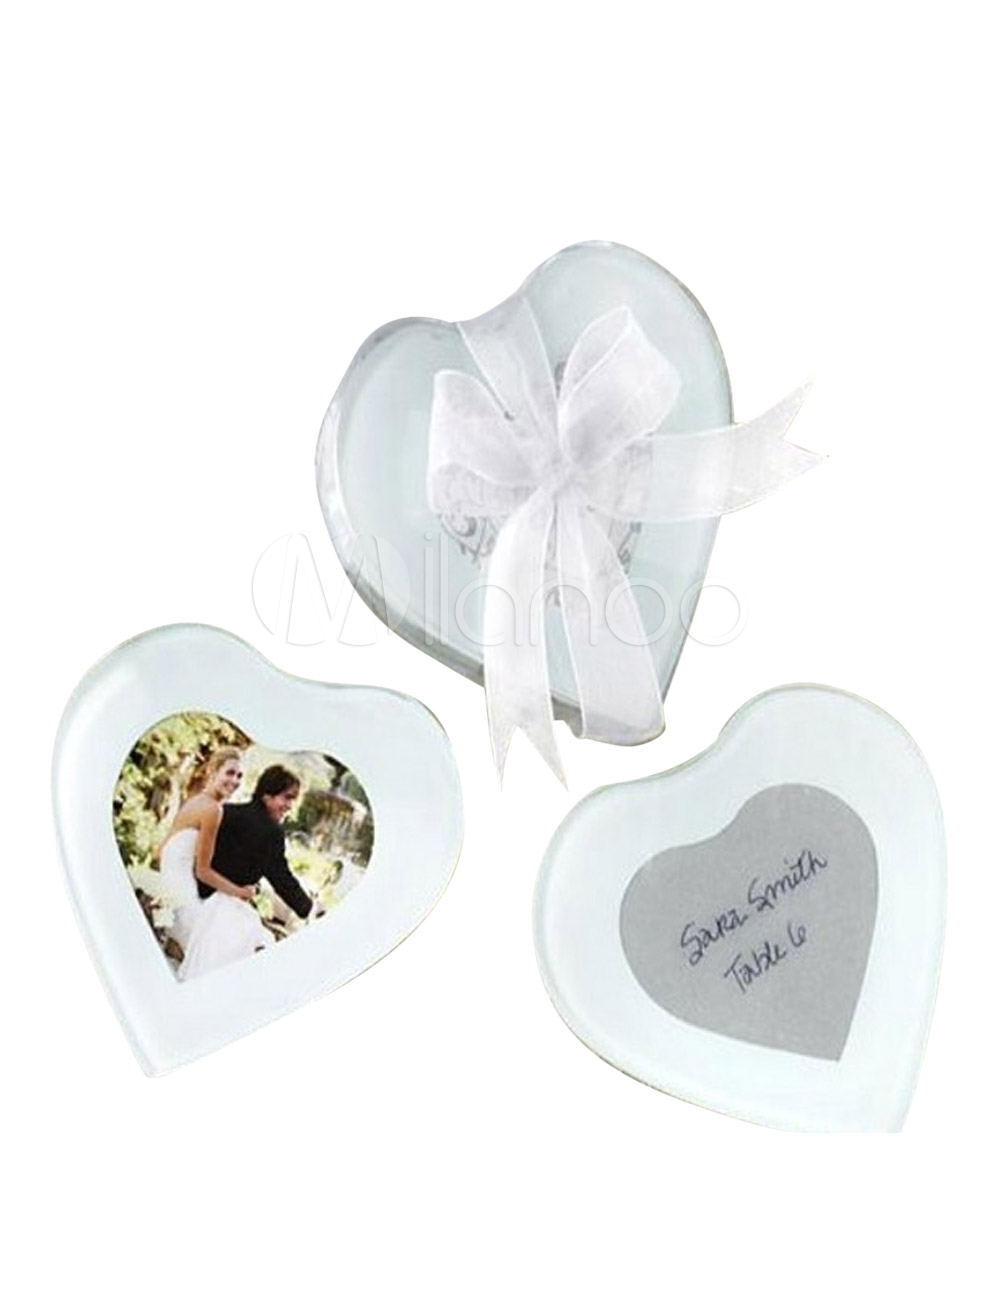 2-Piece Heart Shaped Glass Coaster Favors for Wedding